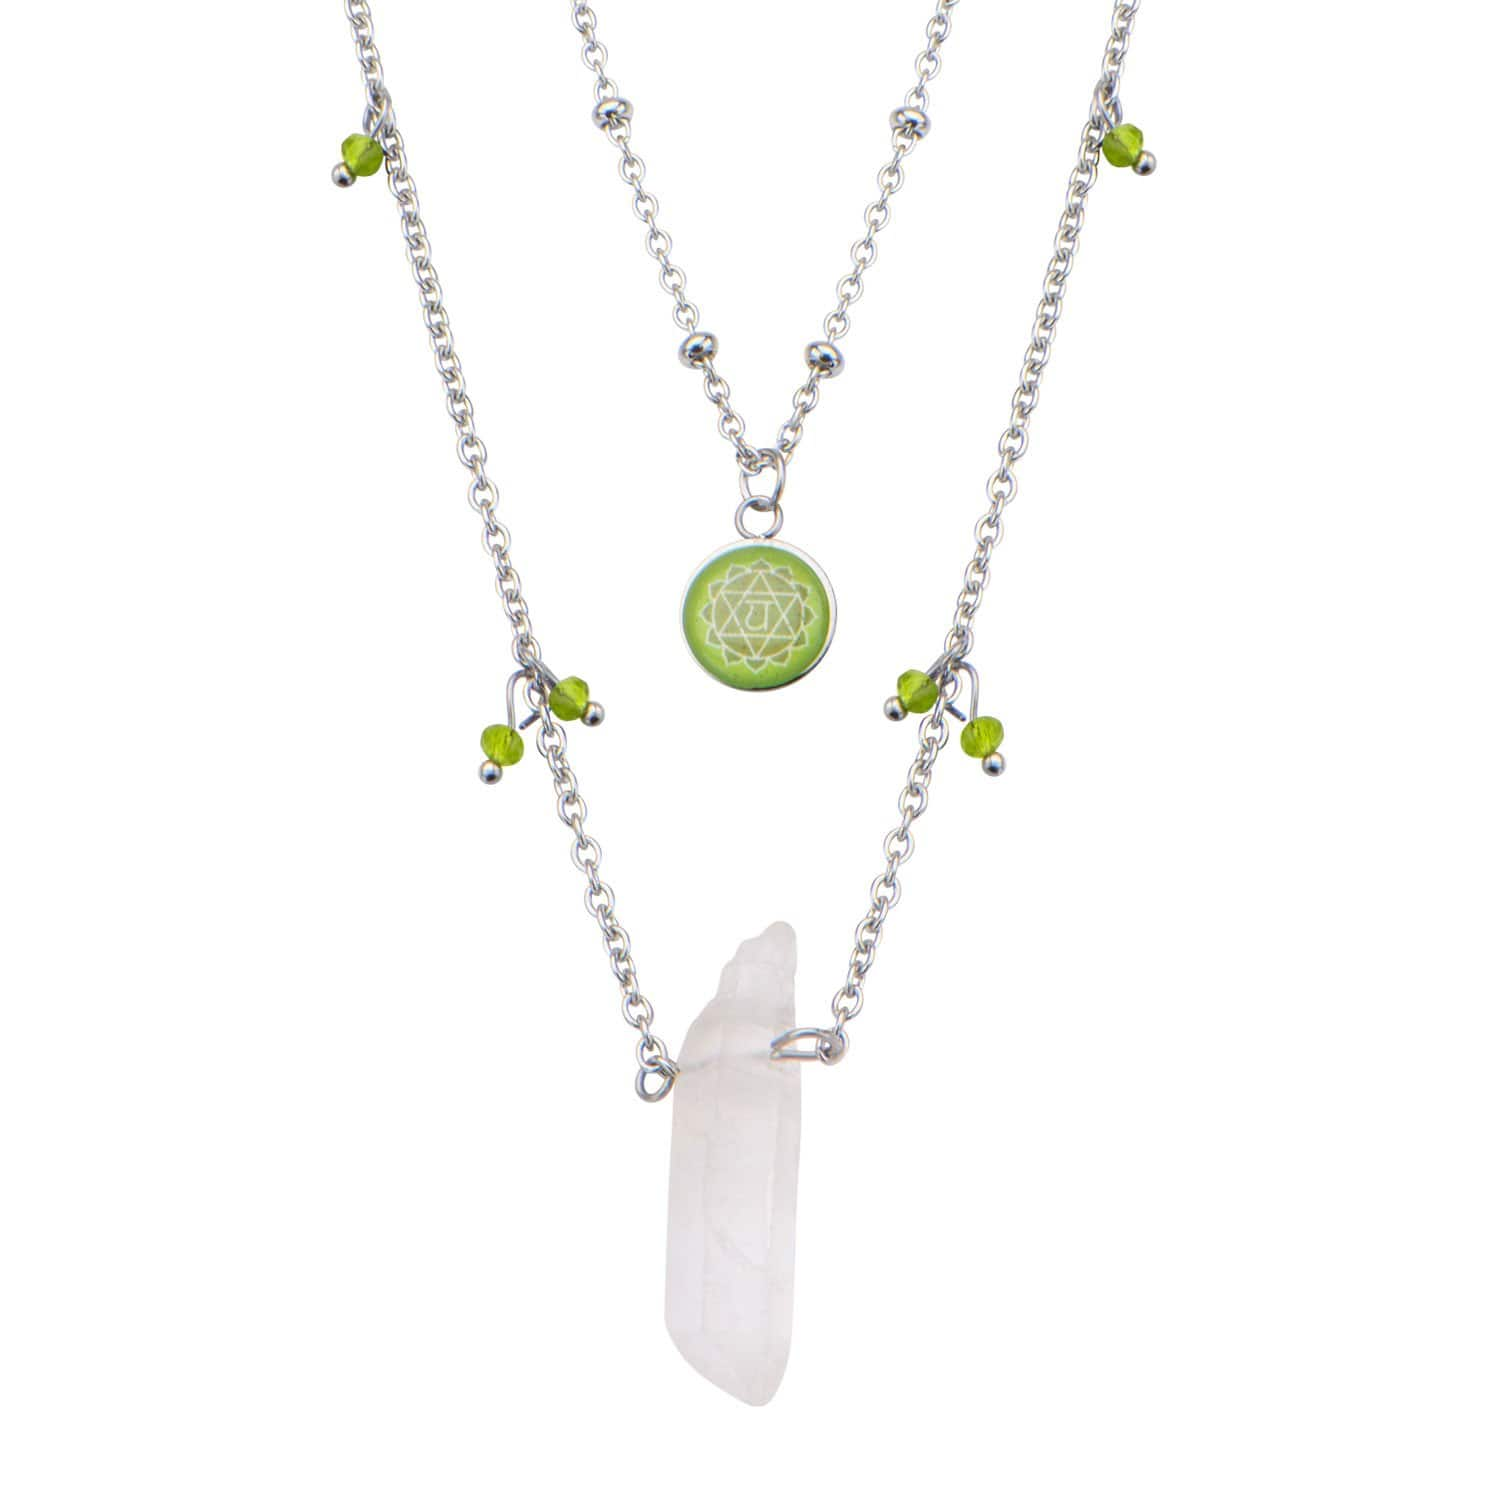 Silver Stainless Steel Green Quartz Crystal Heart Chakra Necklace